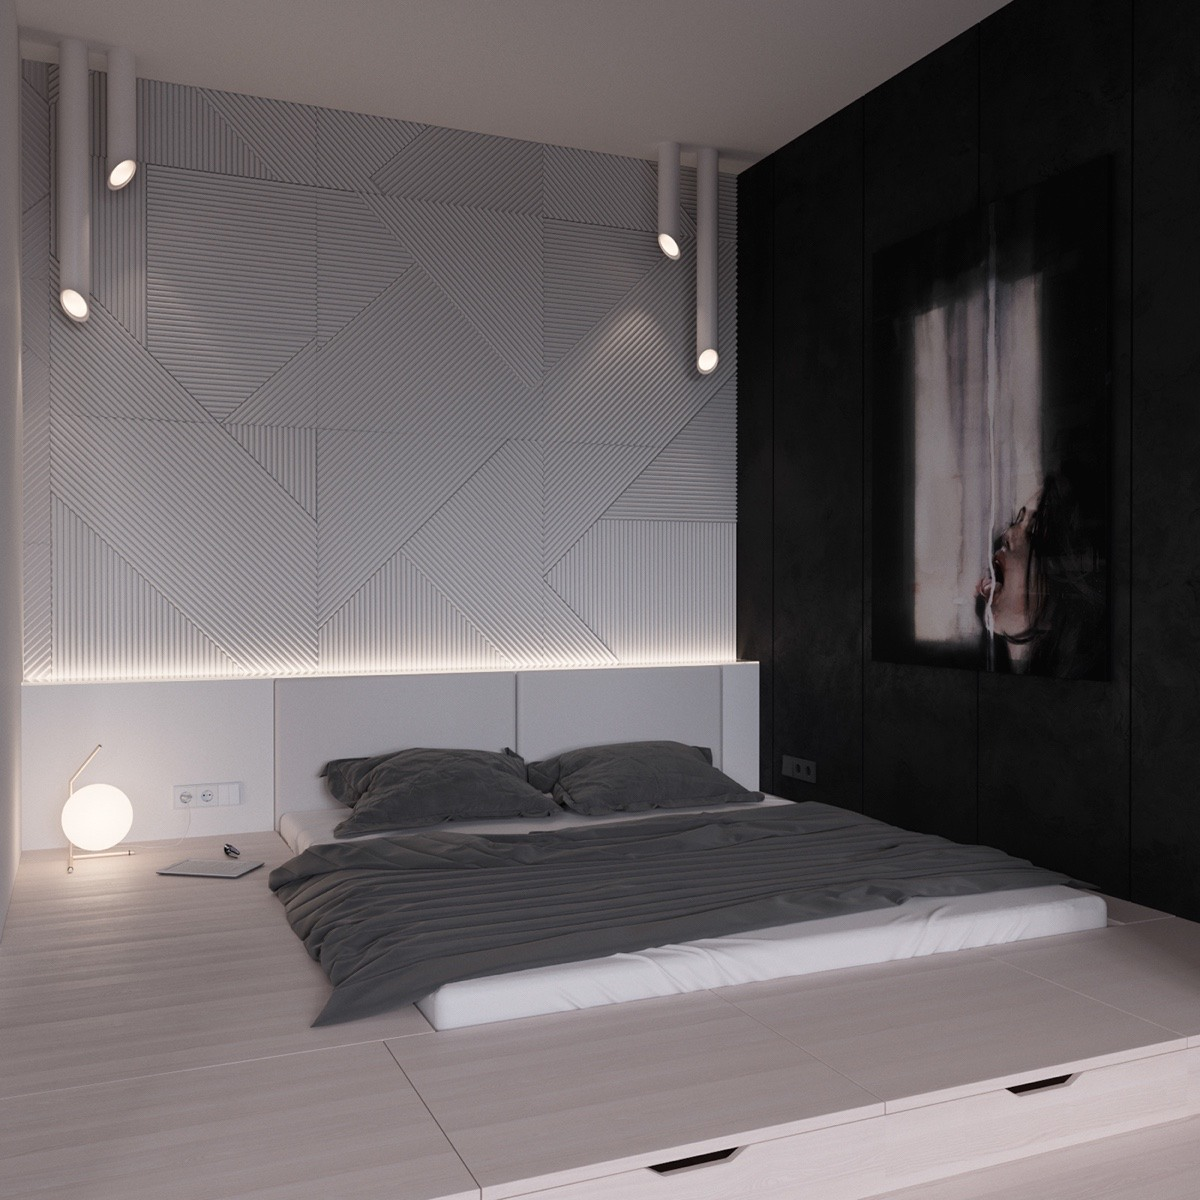 Simple Bedrooms Modern Bedroom Design Ideas For Rooms Of Any Sizeproper